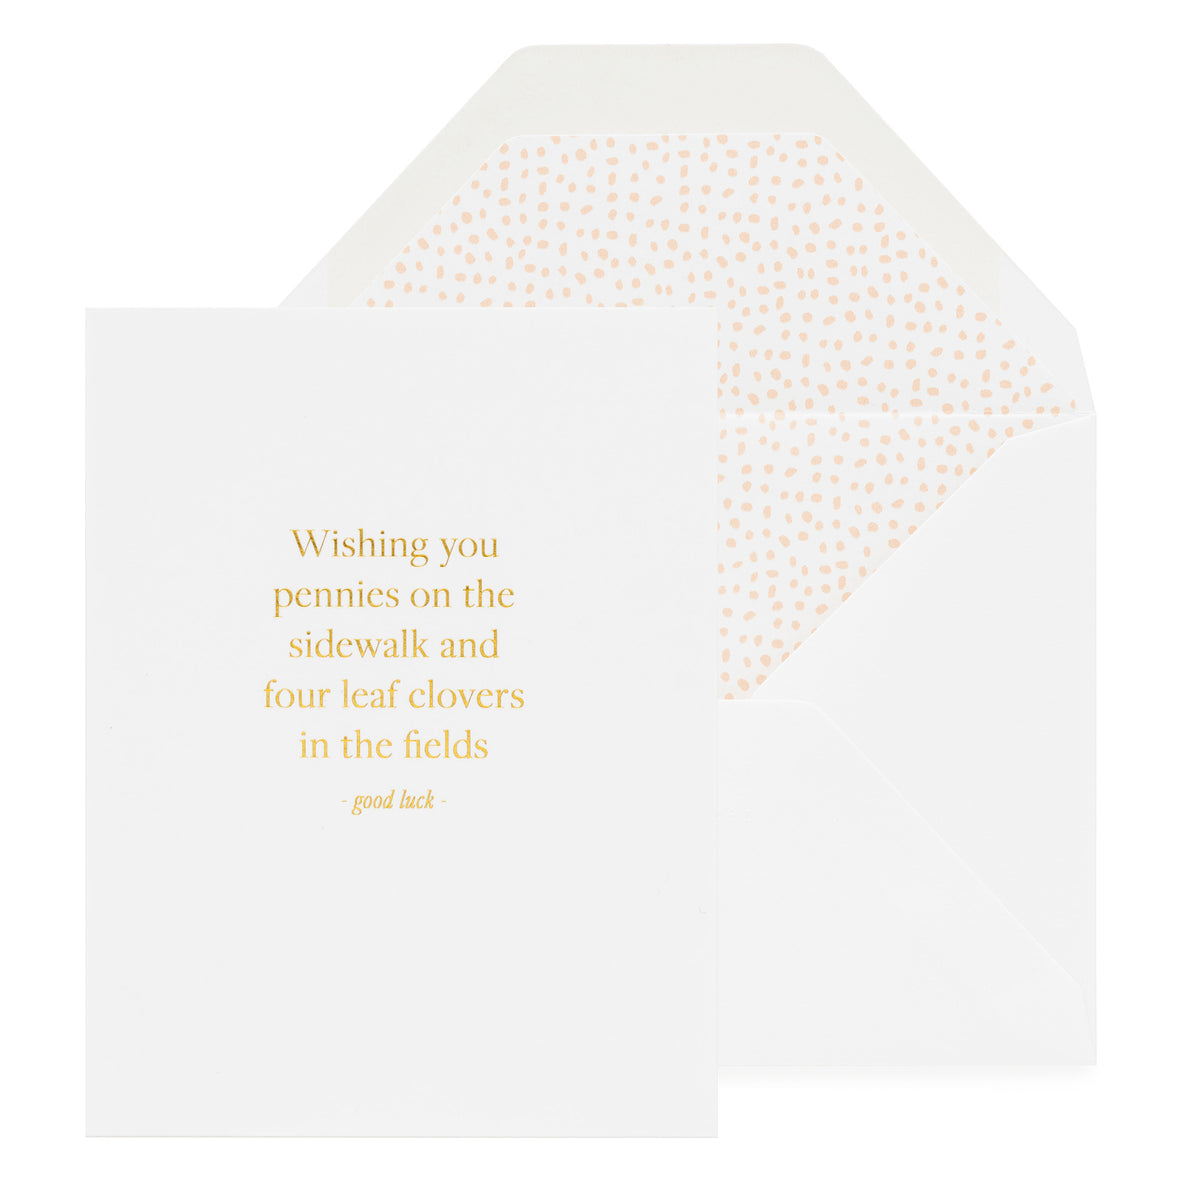 Gold foil printed white good luck card with white envelope and pink liner